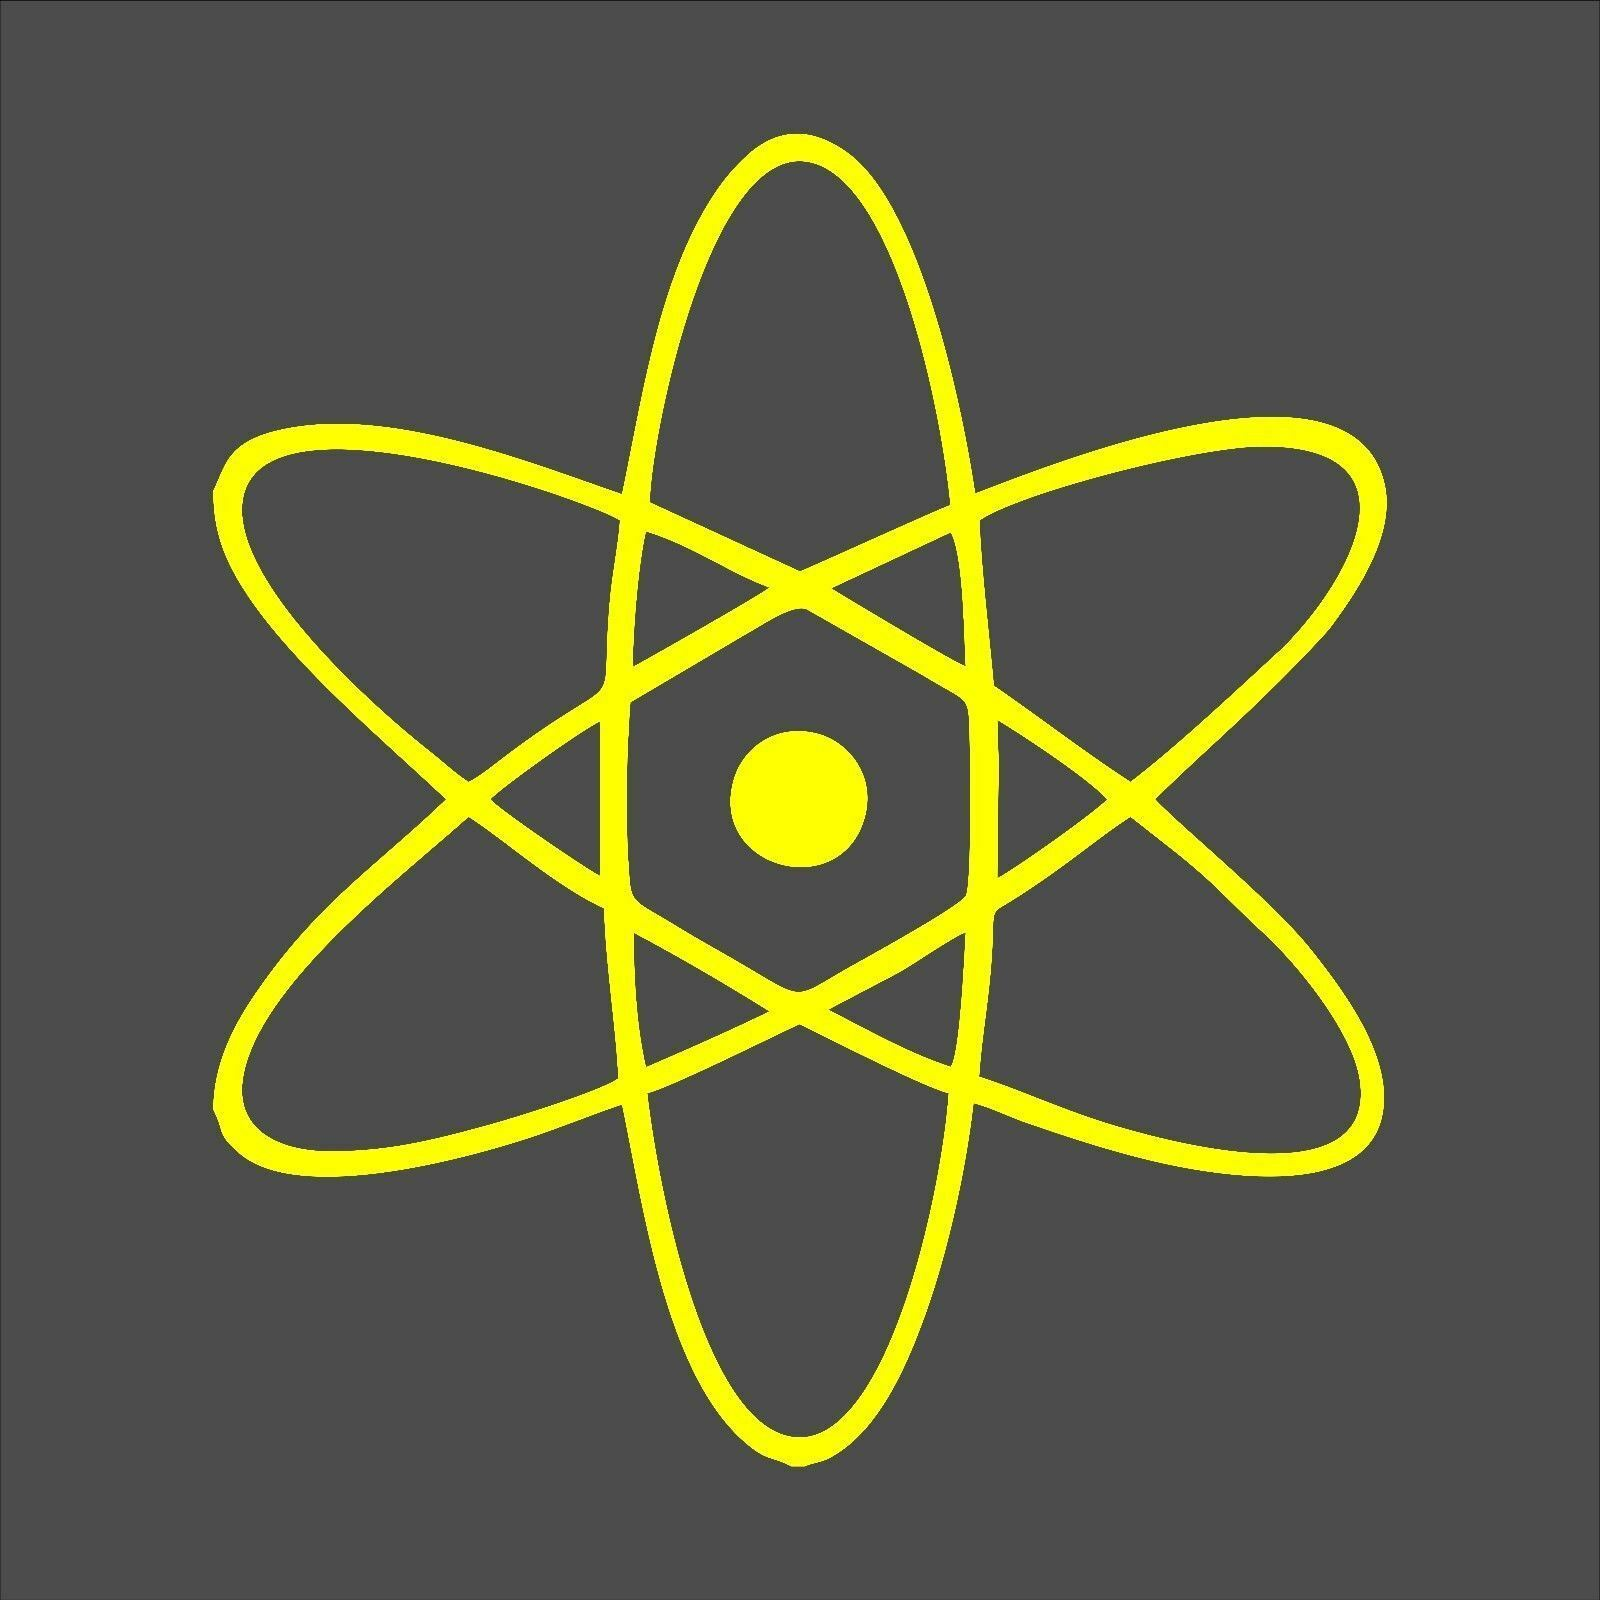 Atom Decal / Sticker - Choose Size & Color - Big Bang Theory